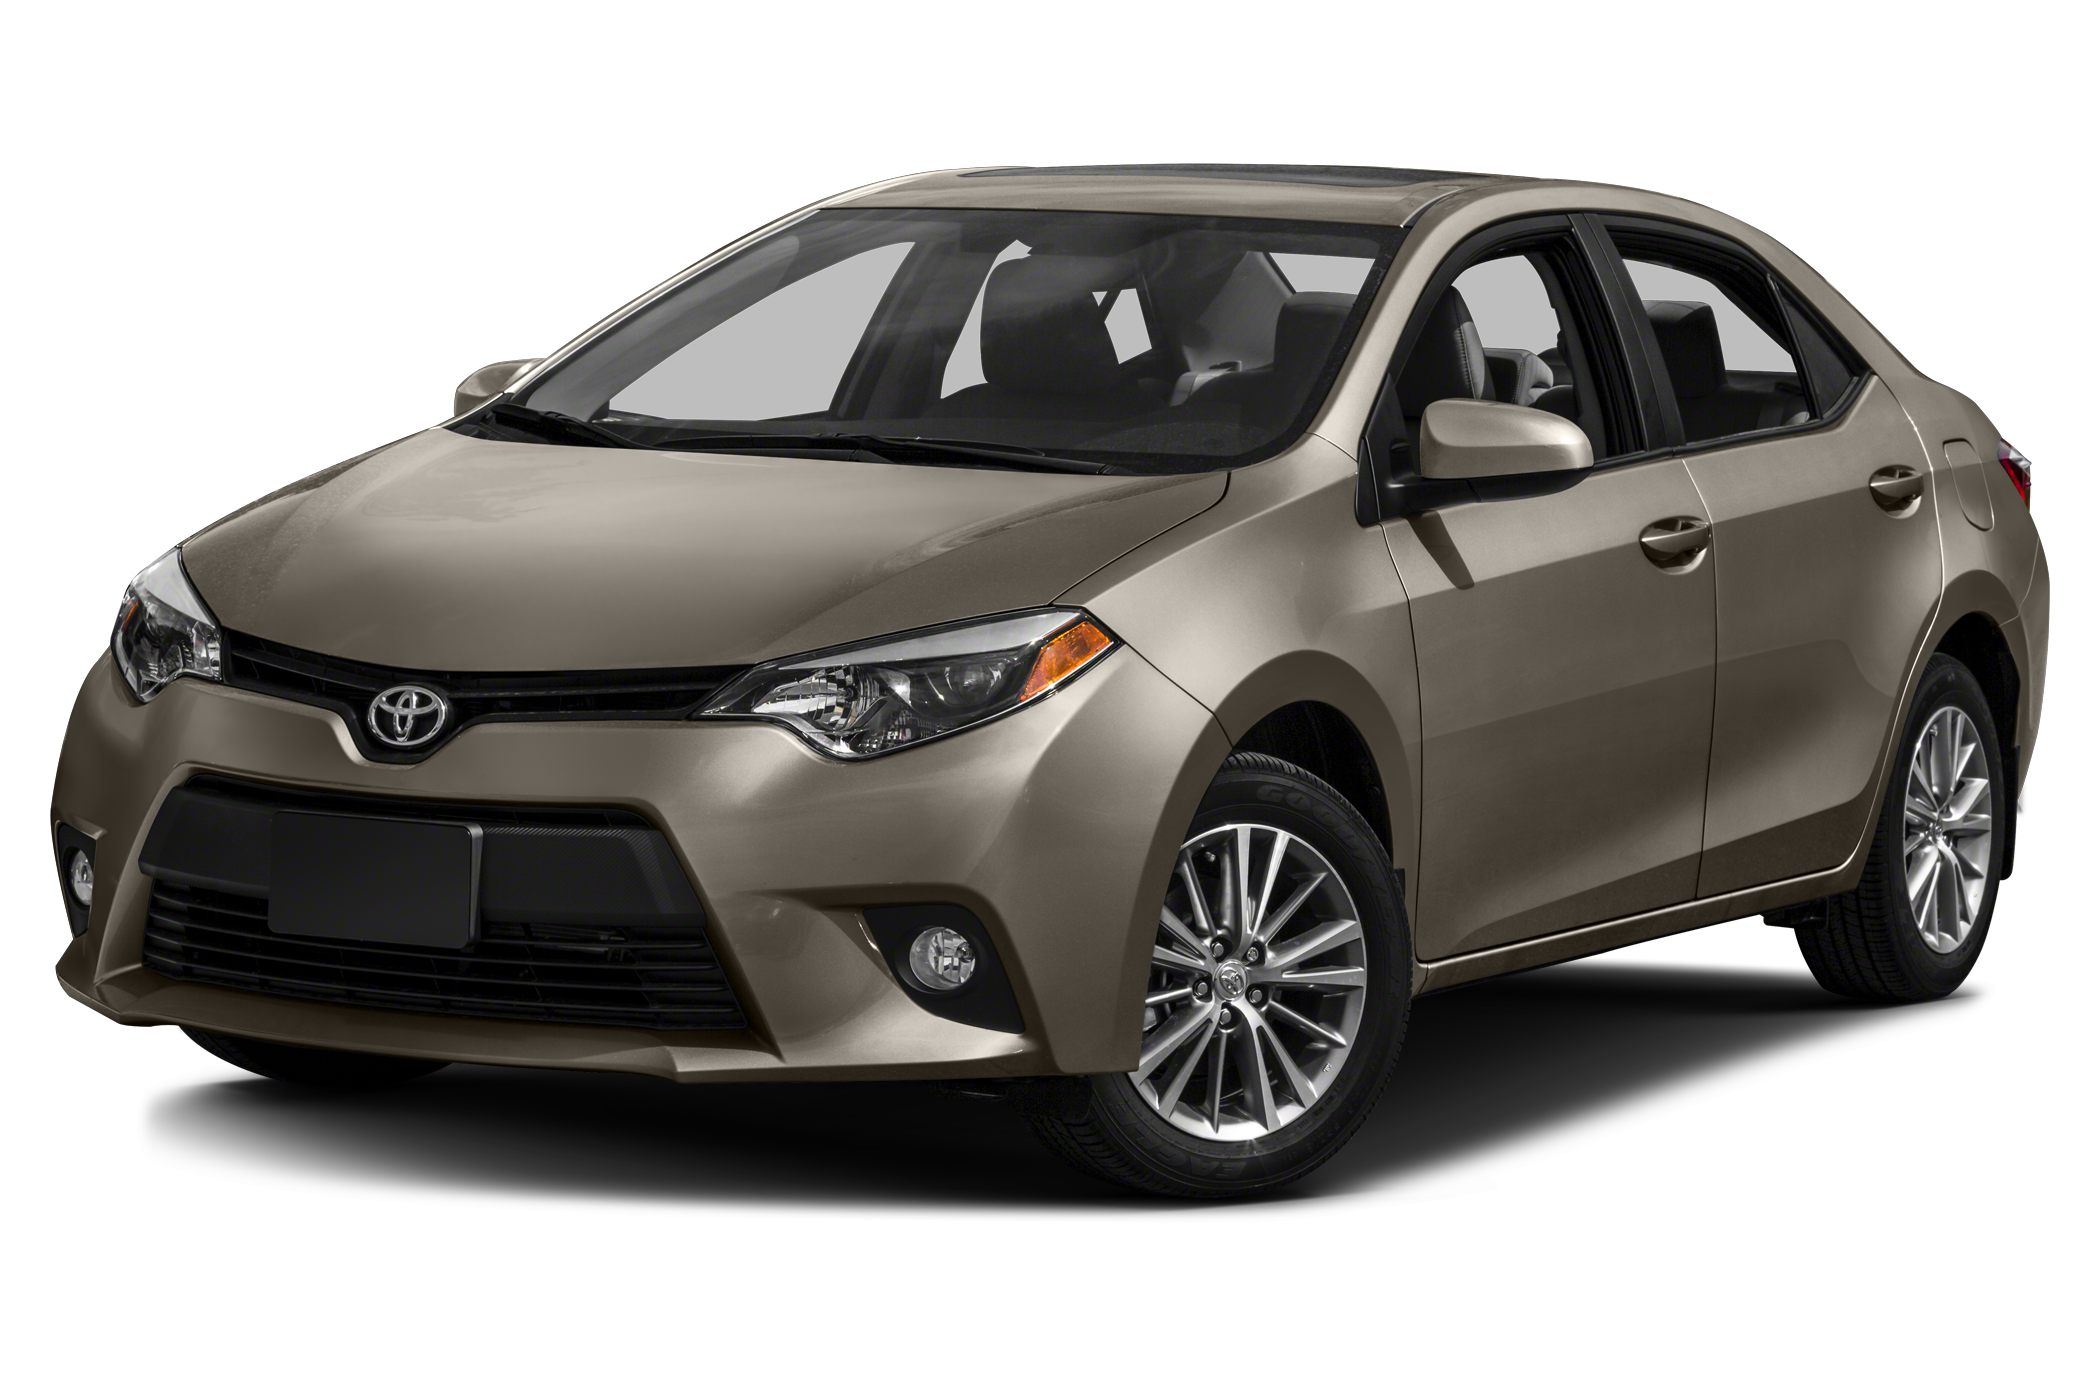 2015 Toyota Corolla LE Sedan for sale in Superior for $19,540 with 3 miles